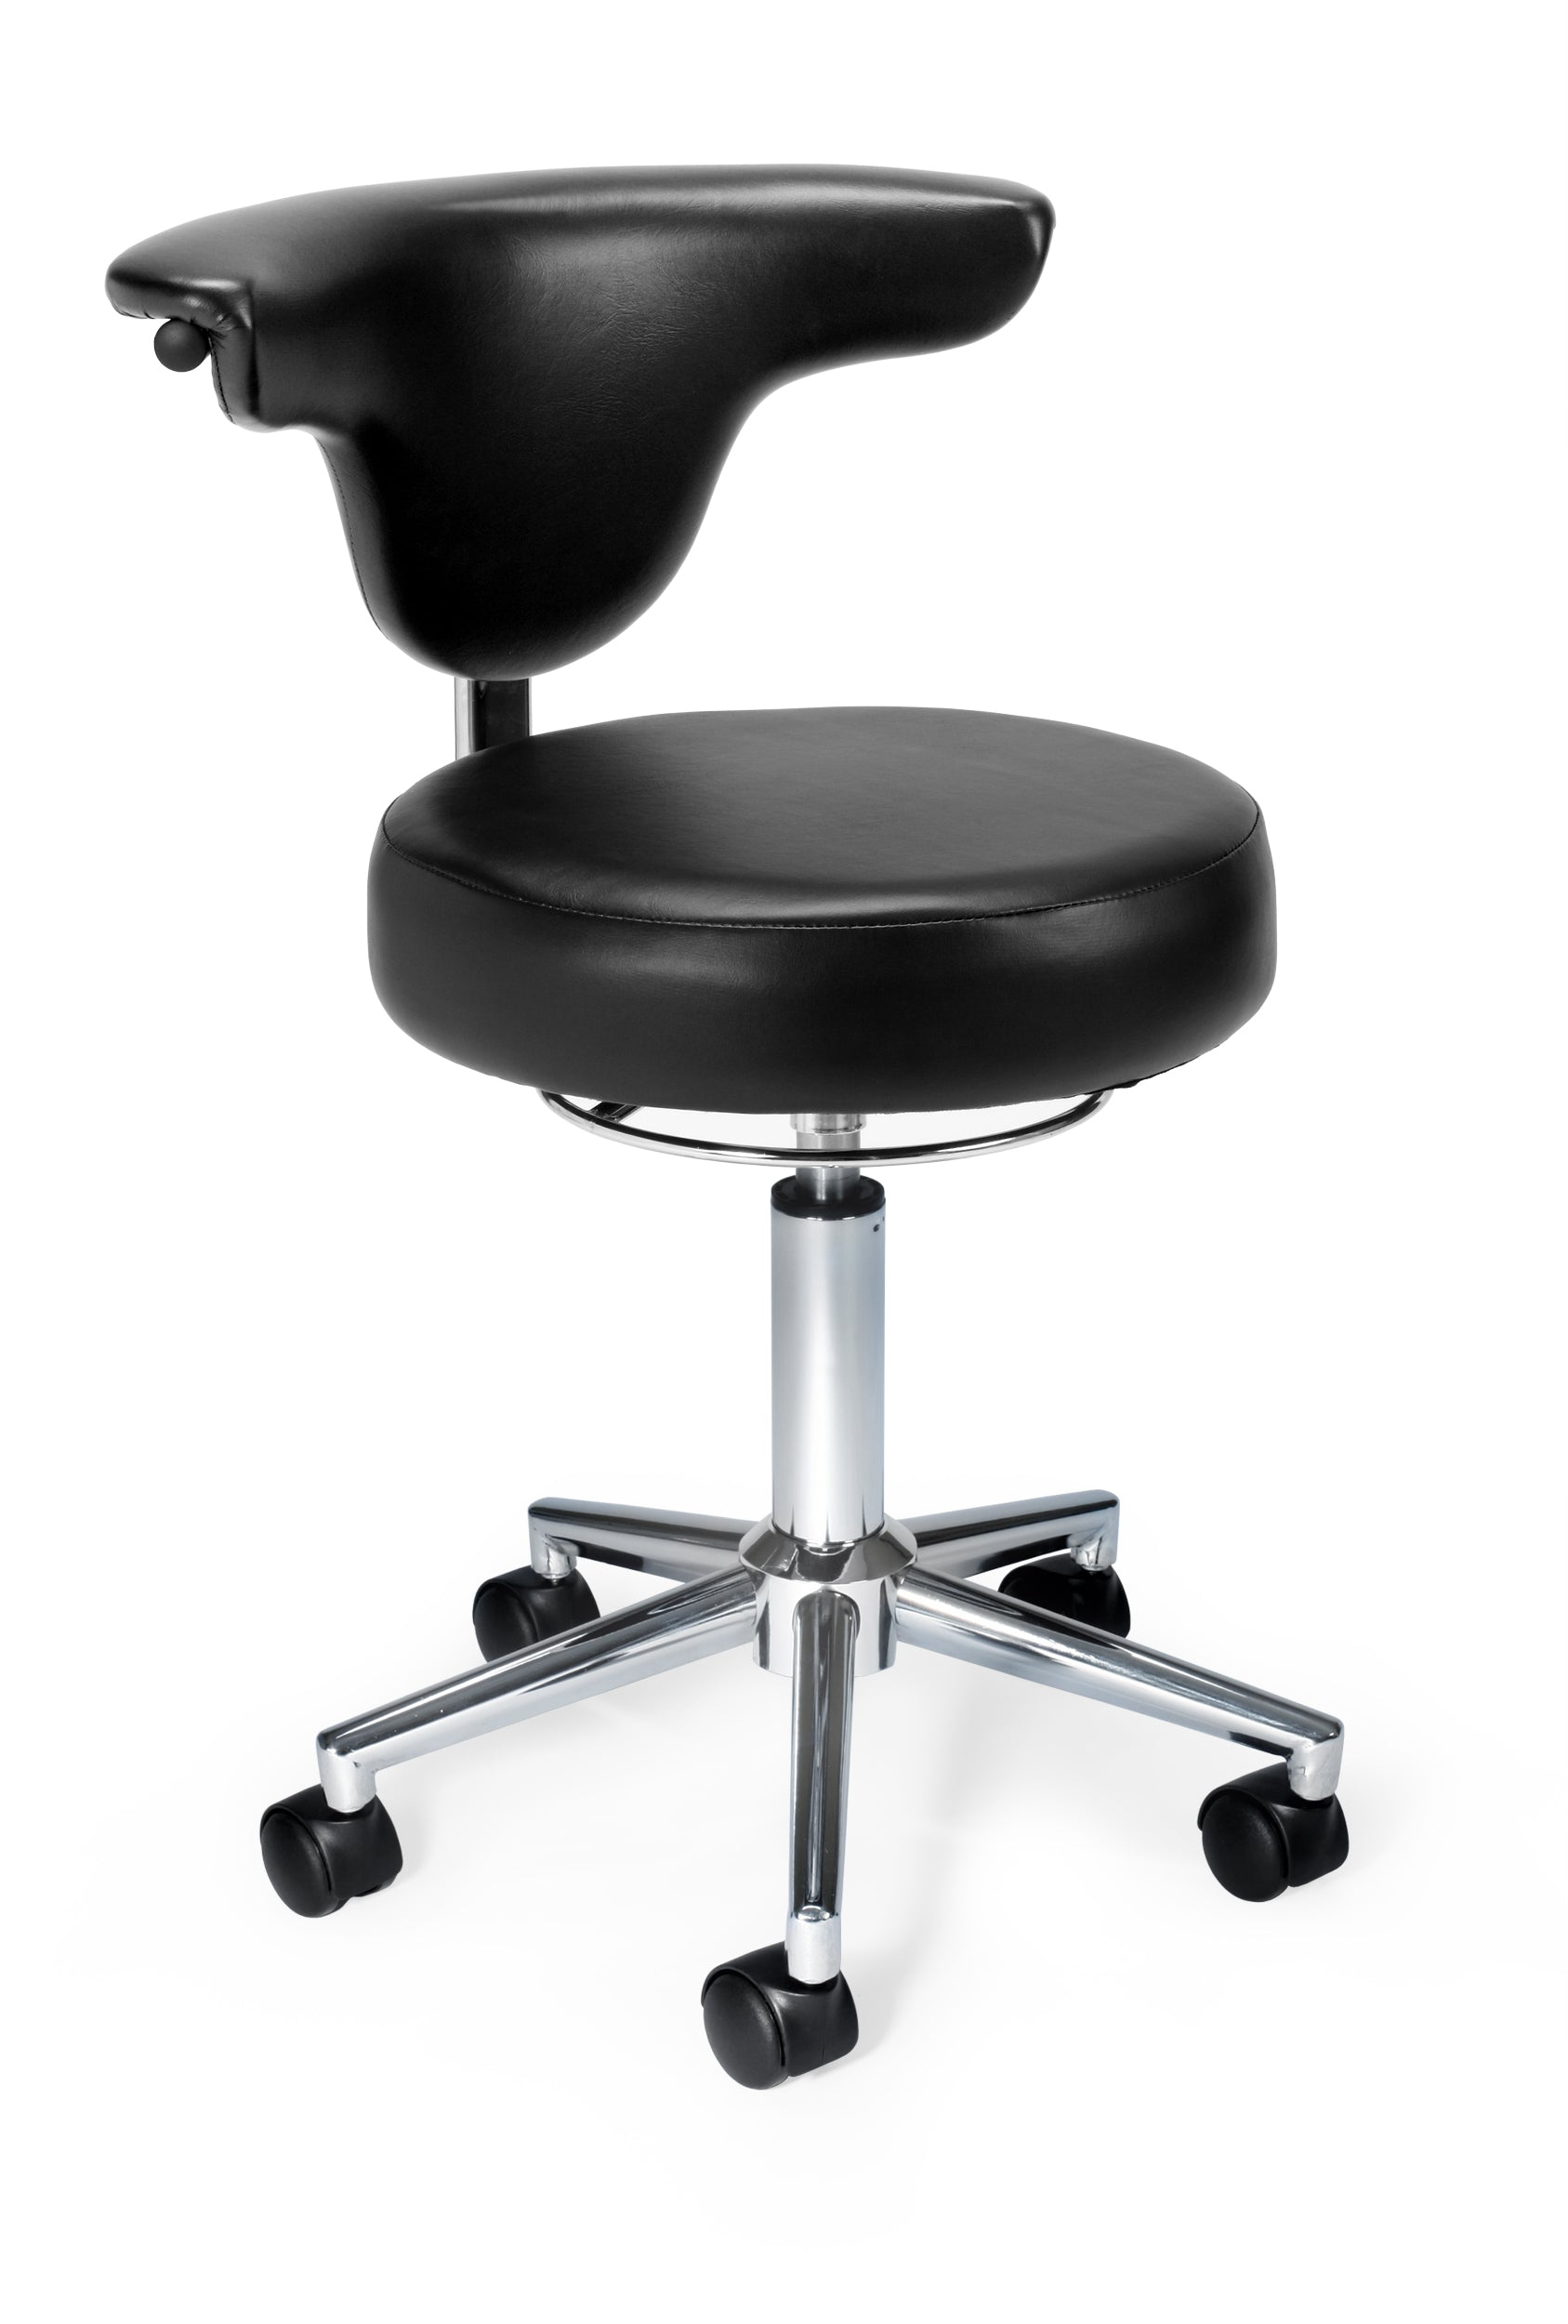 Ofminc Model 910 Anatomy Chair